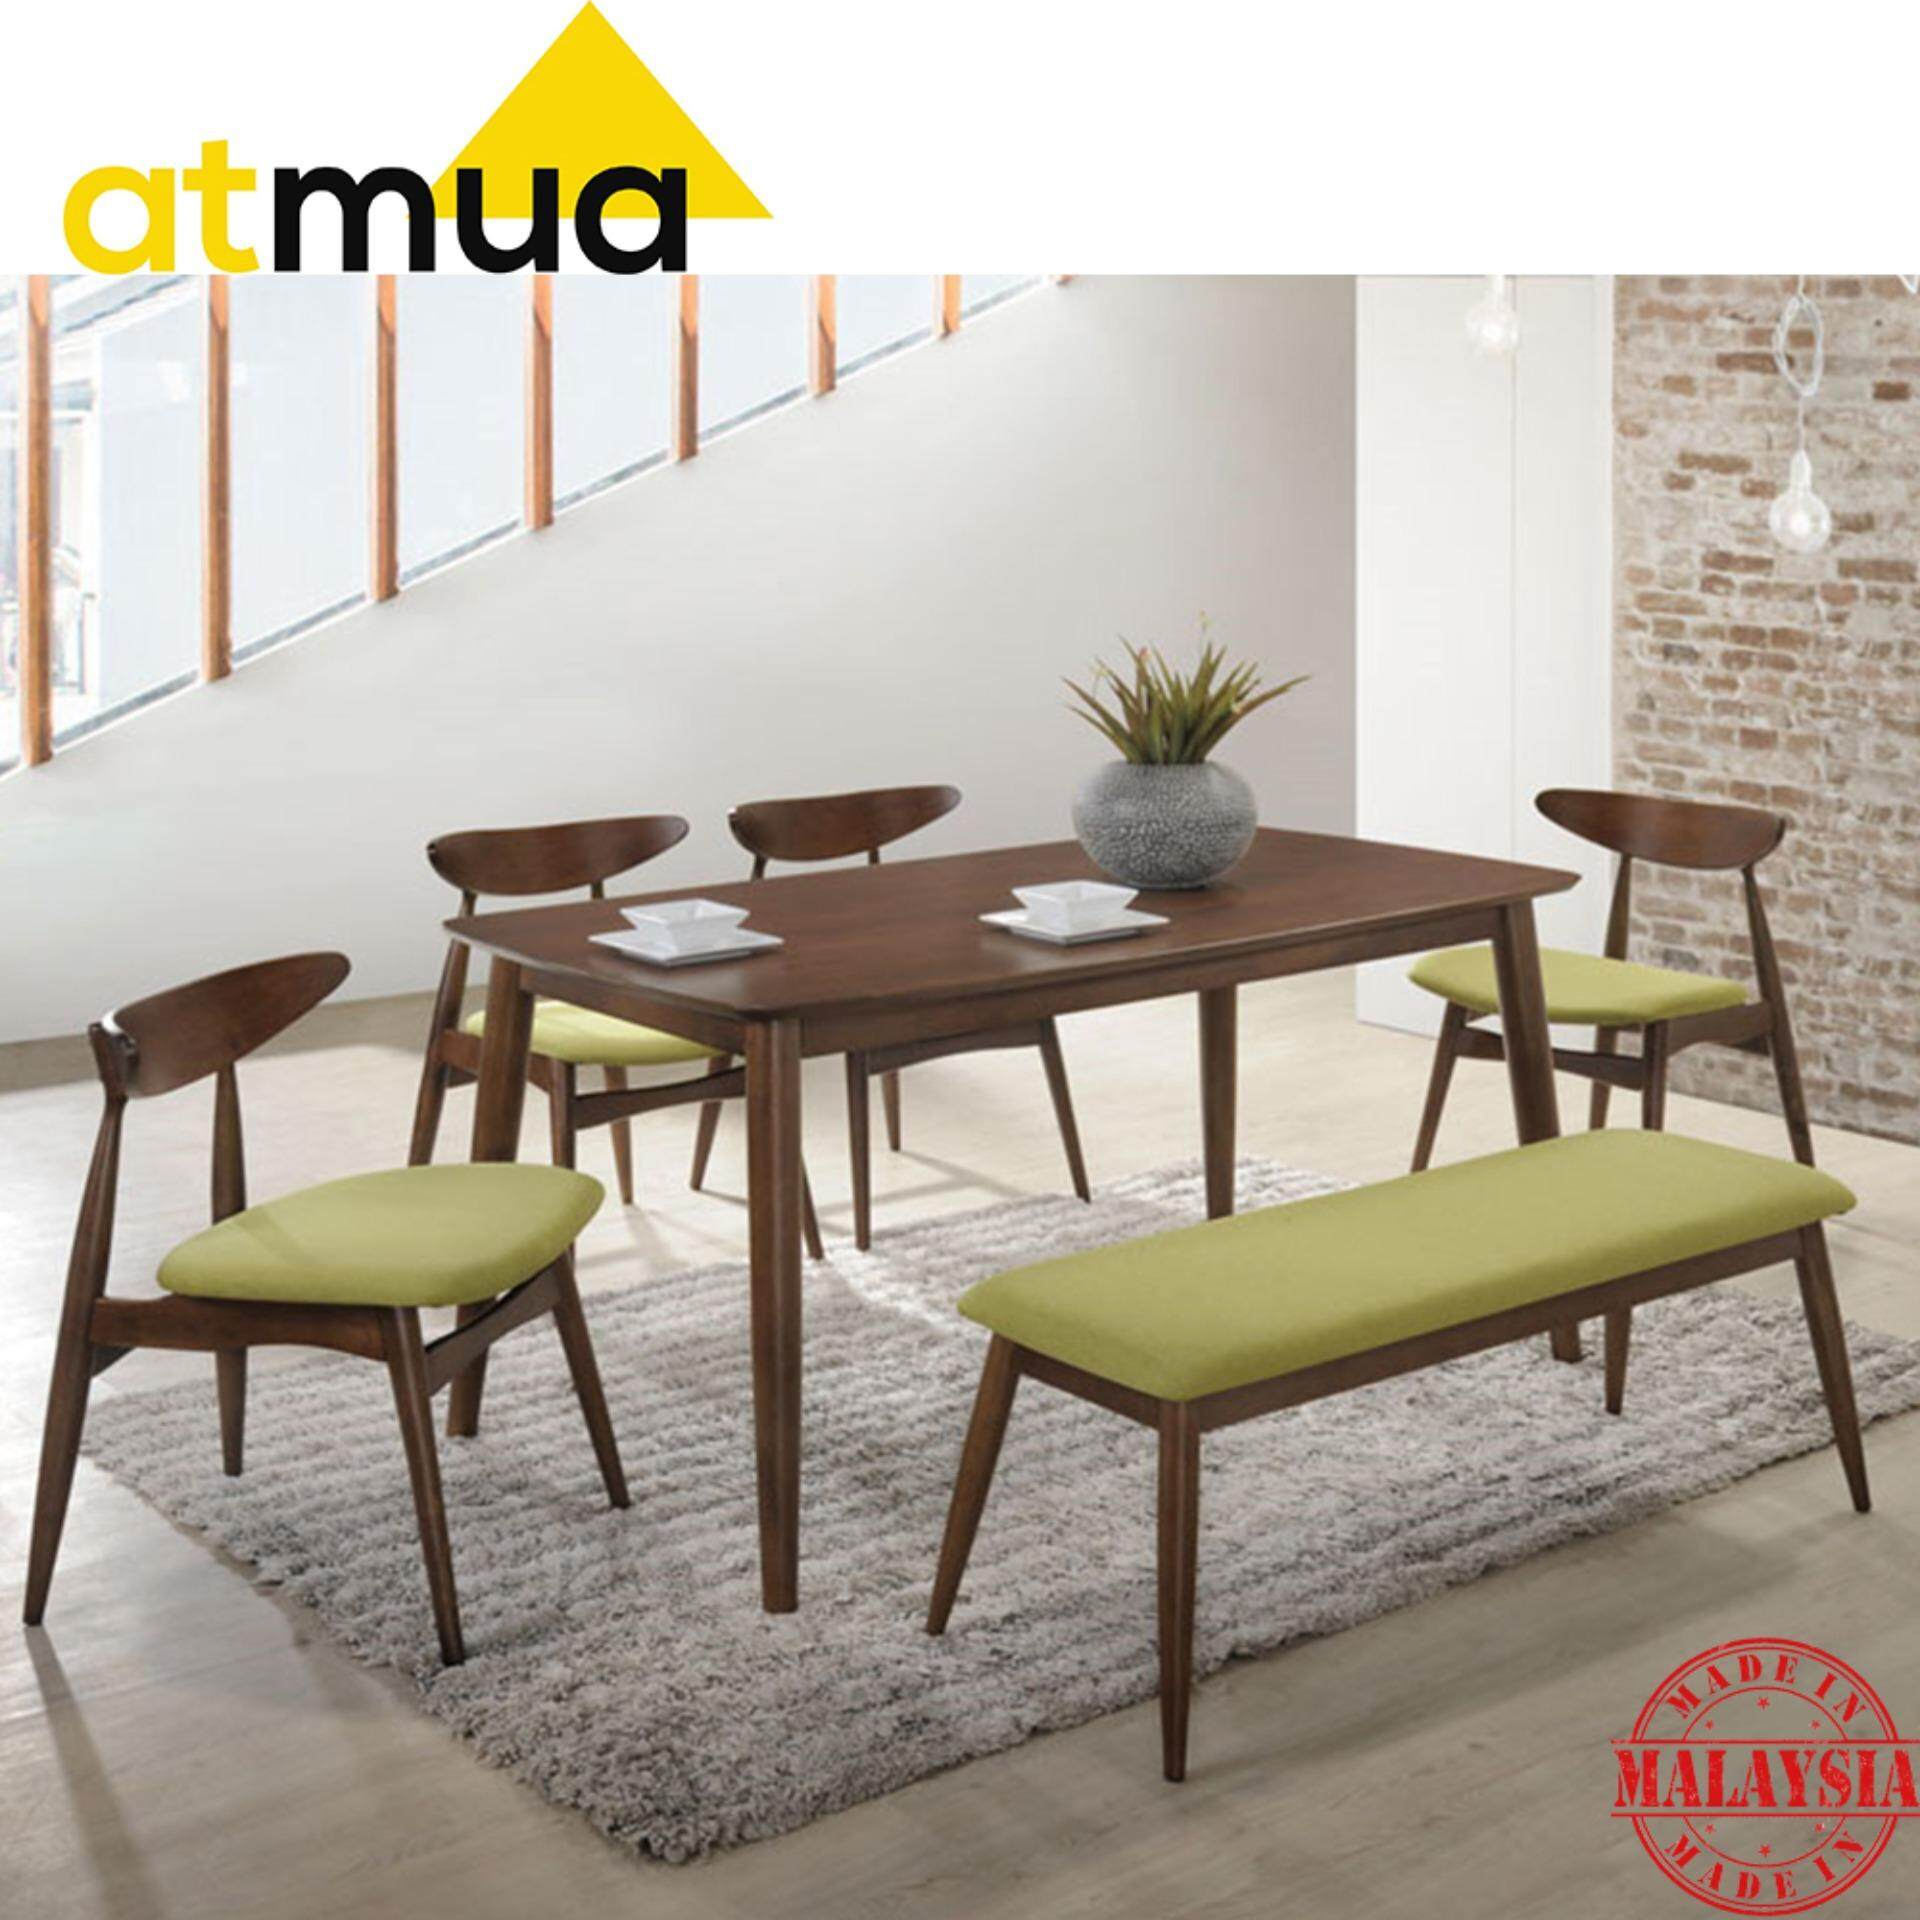 Incredible Atmua Borato Dining Set Furniture 1 Table 2 Chair 1 Bench Scandinavian Style Full Solid Wood Interior Design Ideas Gentotryabchikinfo